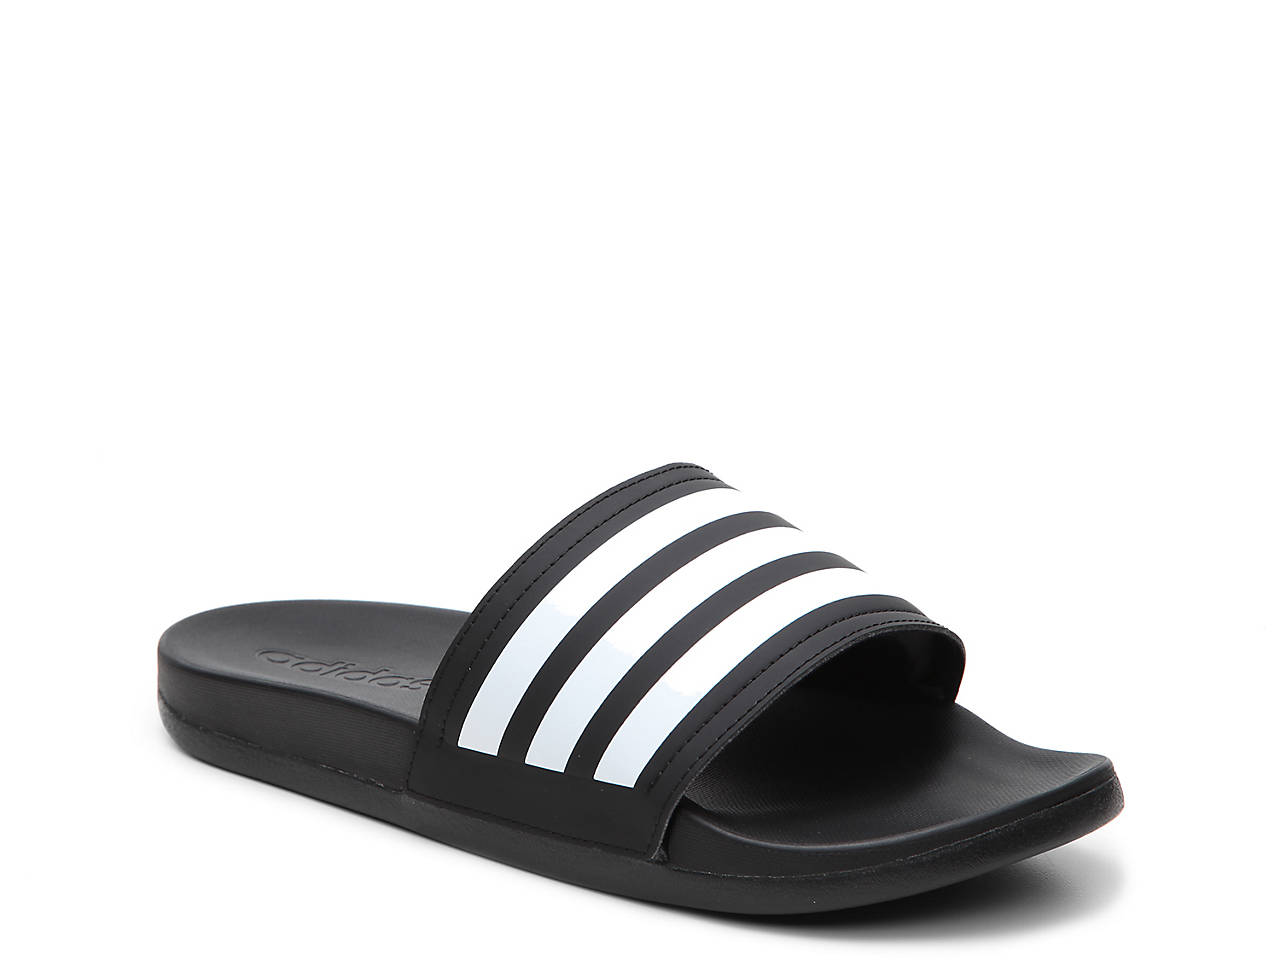 5af4a1660be0 adidas. Adilette Cloudfoam Ultra Stripes Slide Sandal - Women s